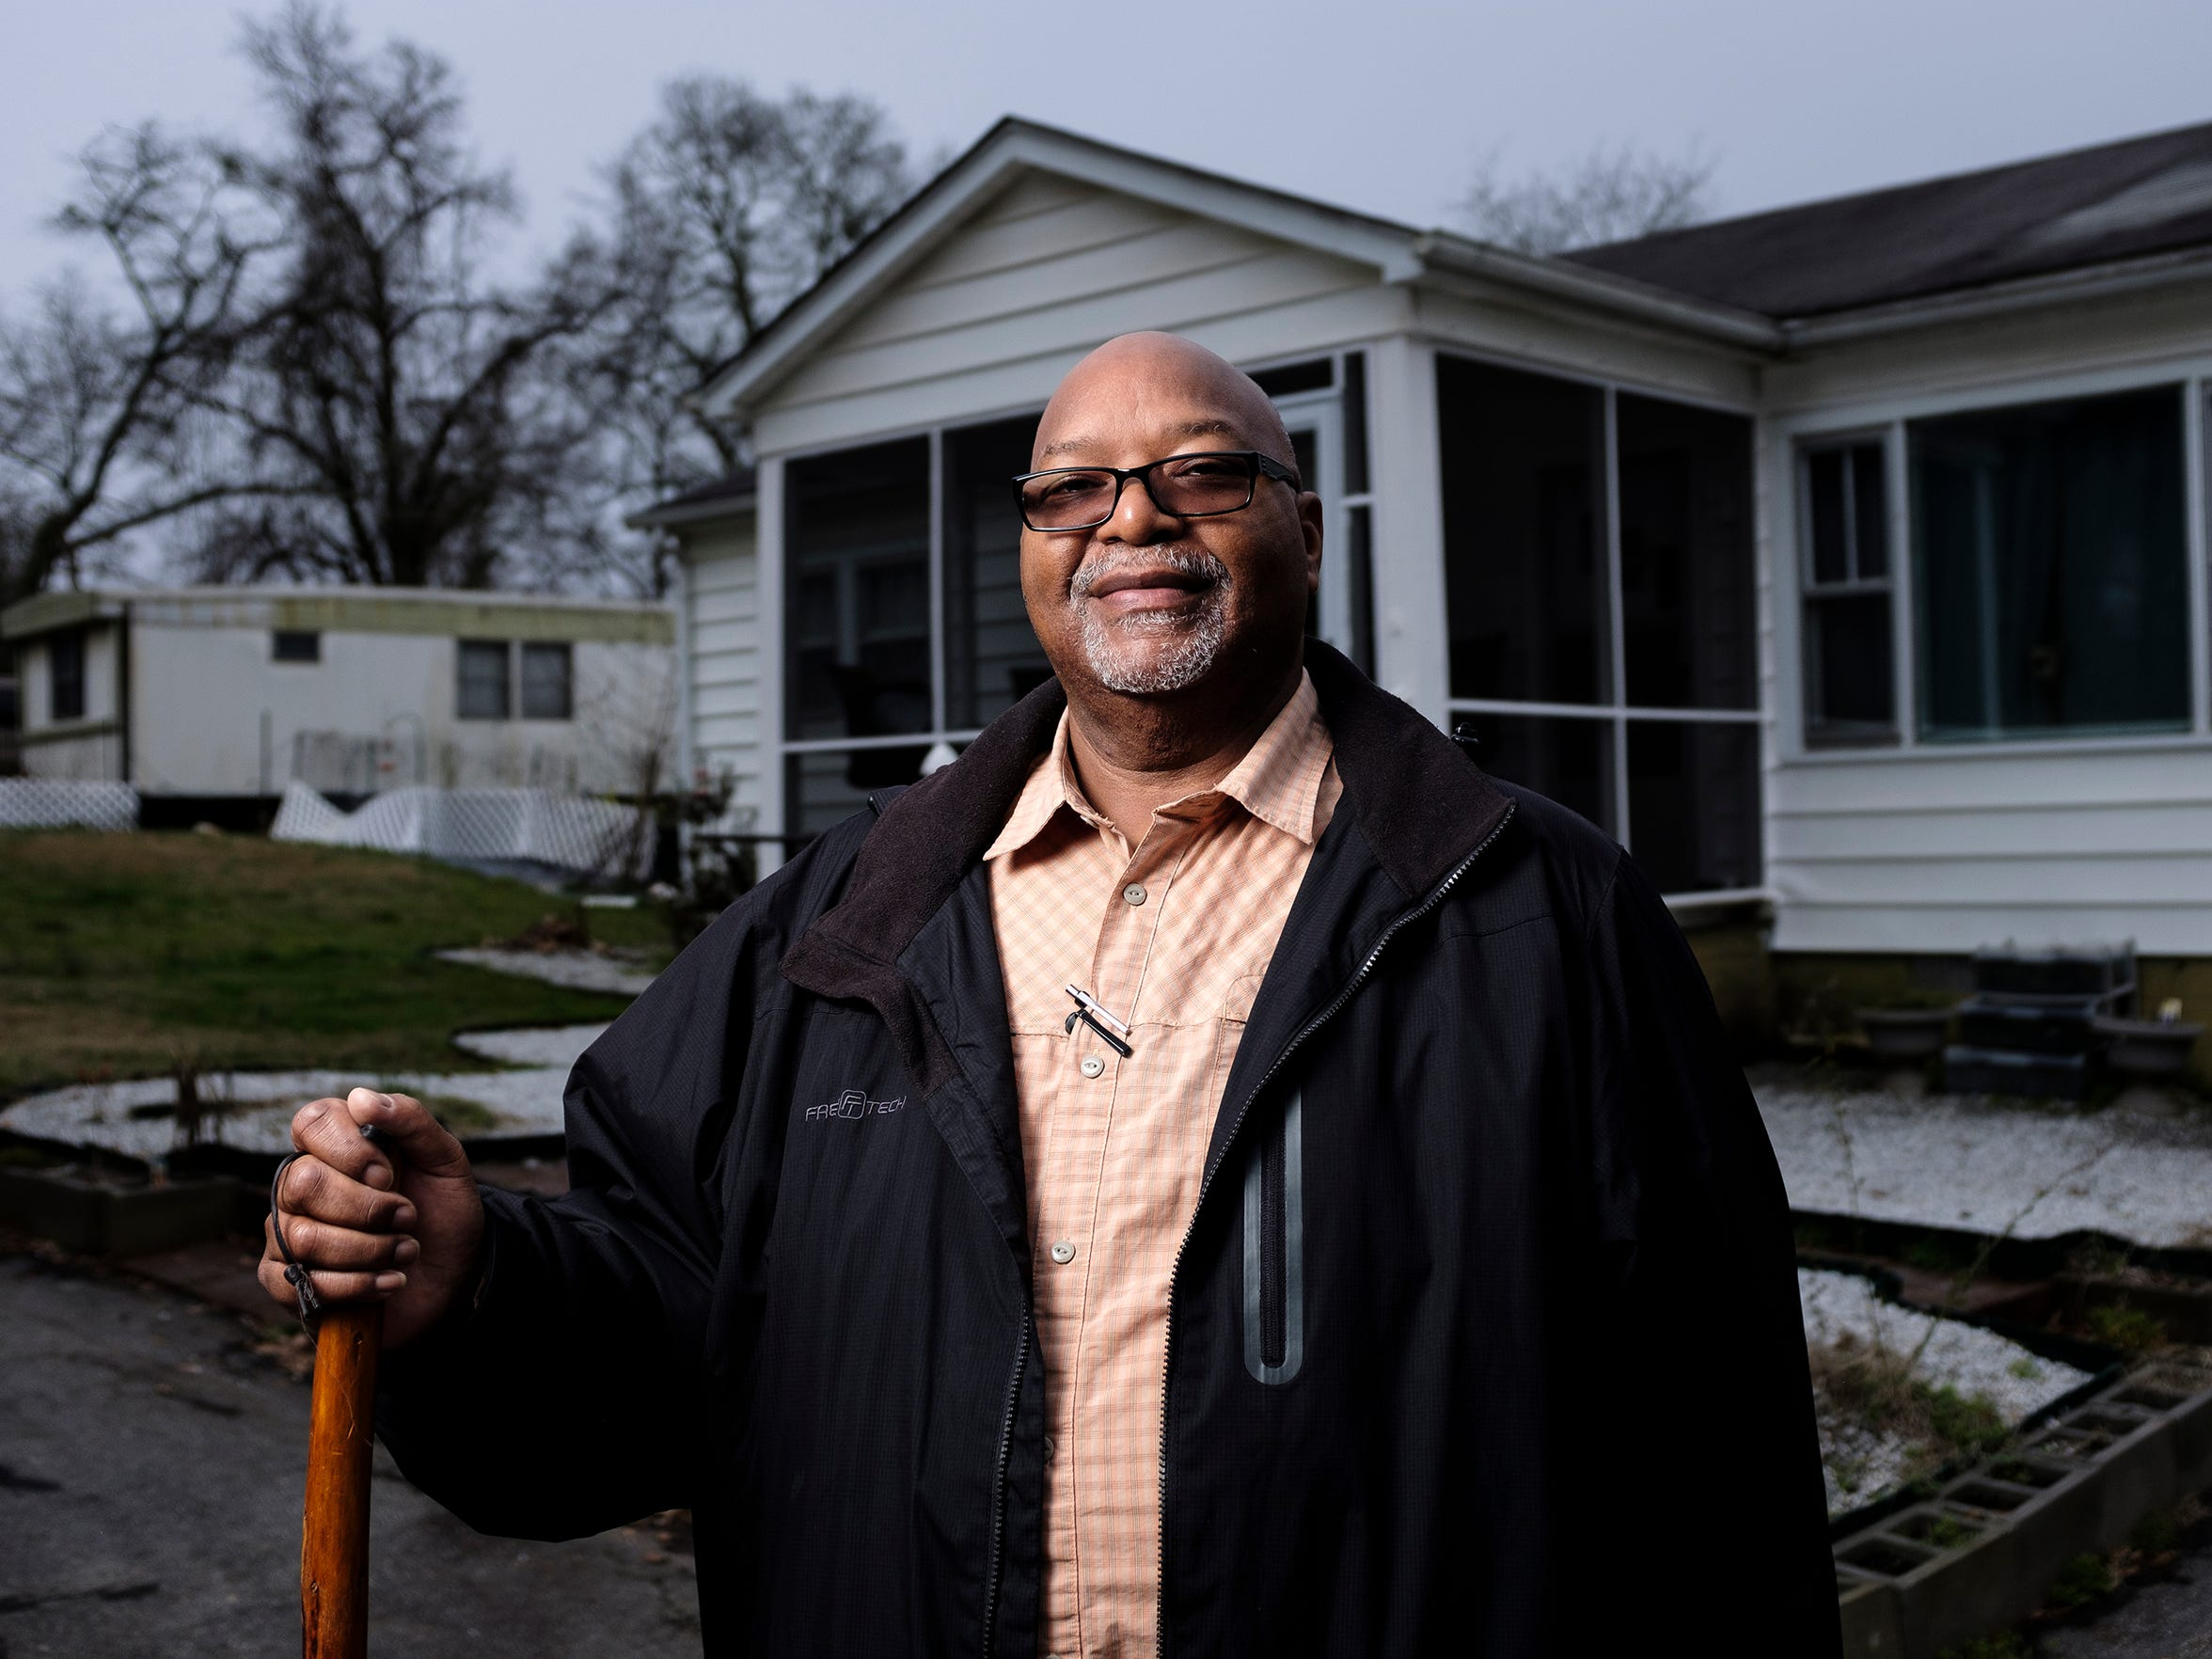 """Cory Massey, 66, moved into his current residence in the Calhoun neighborhood in 2000, but he says he grew up just down the street in a home his family moved into in the 1960s. Their home eventually burned down. """"The Comfort Inn is in our front yard now where our house used to be,"""" Massey says."""